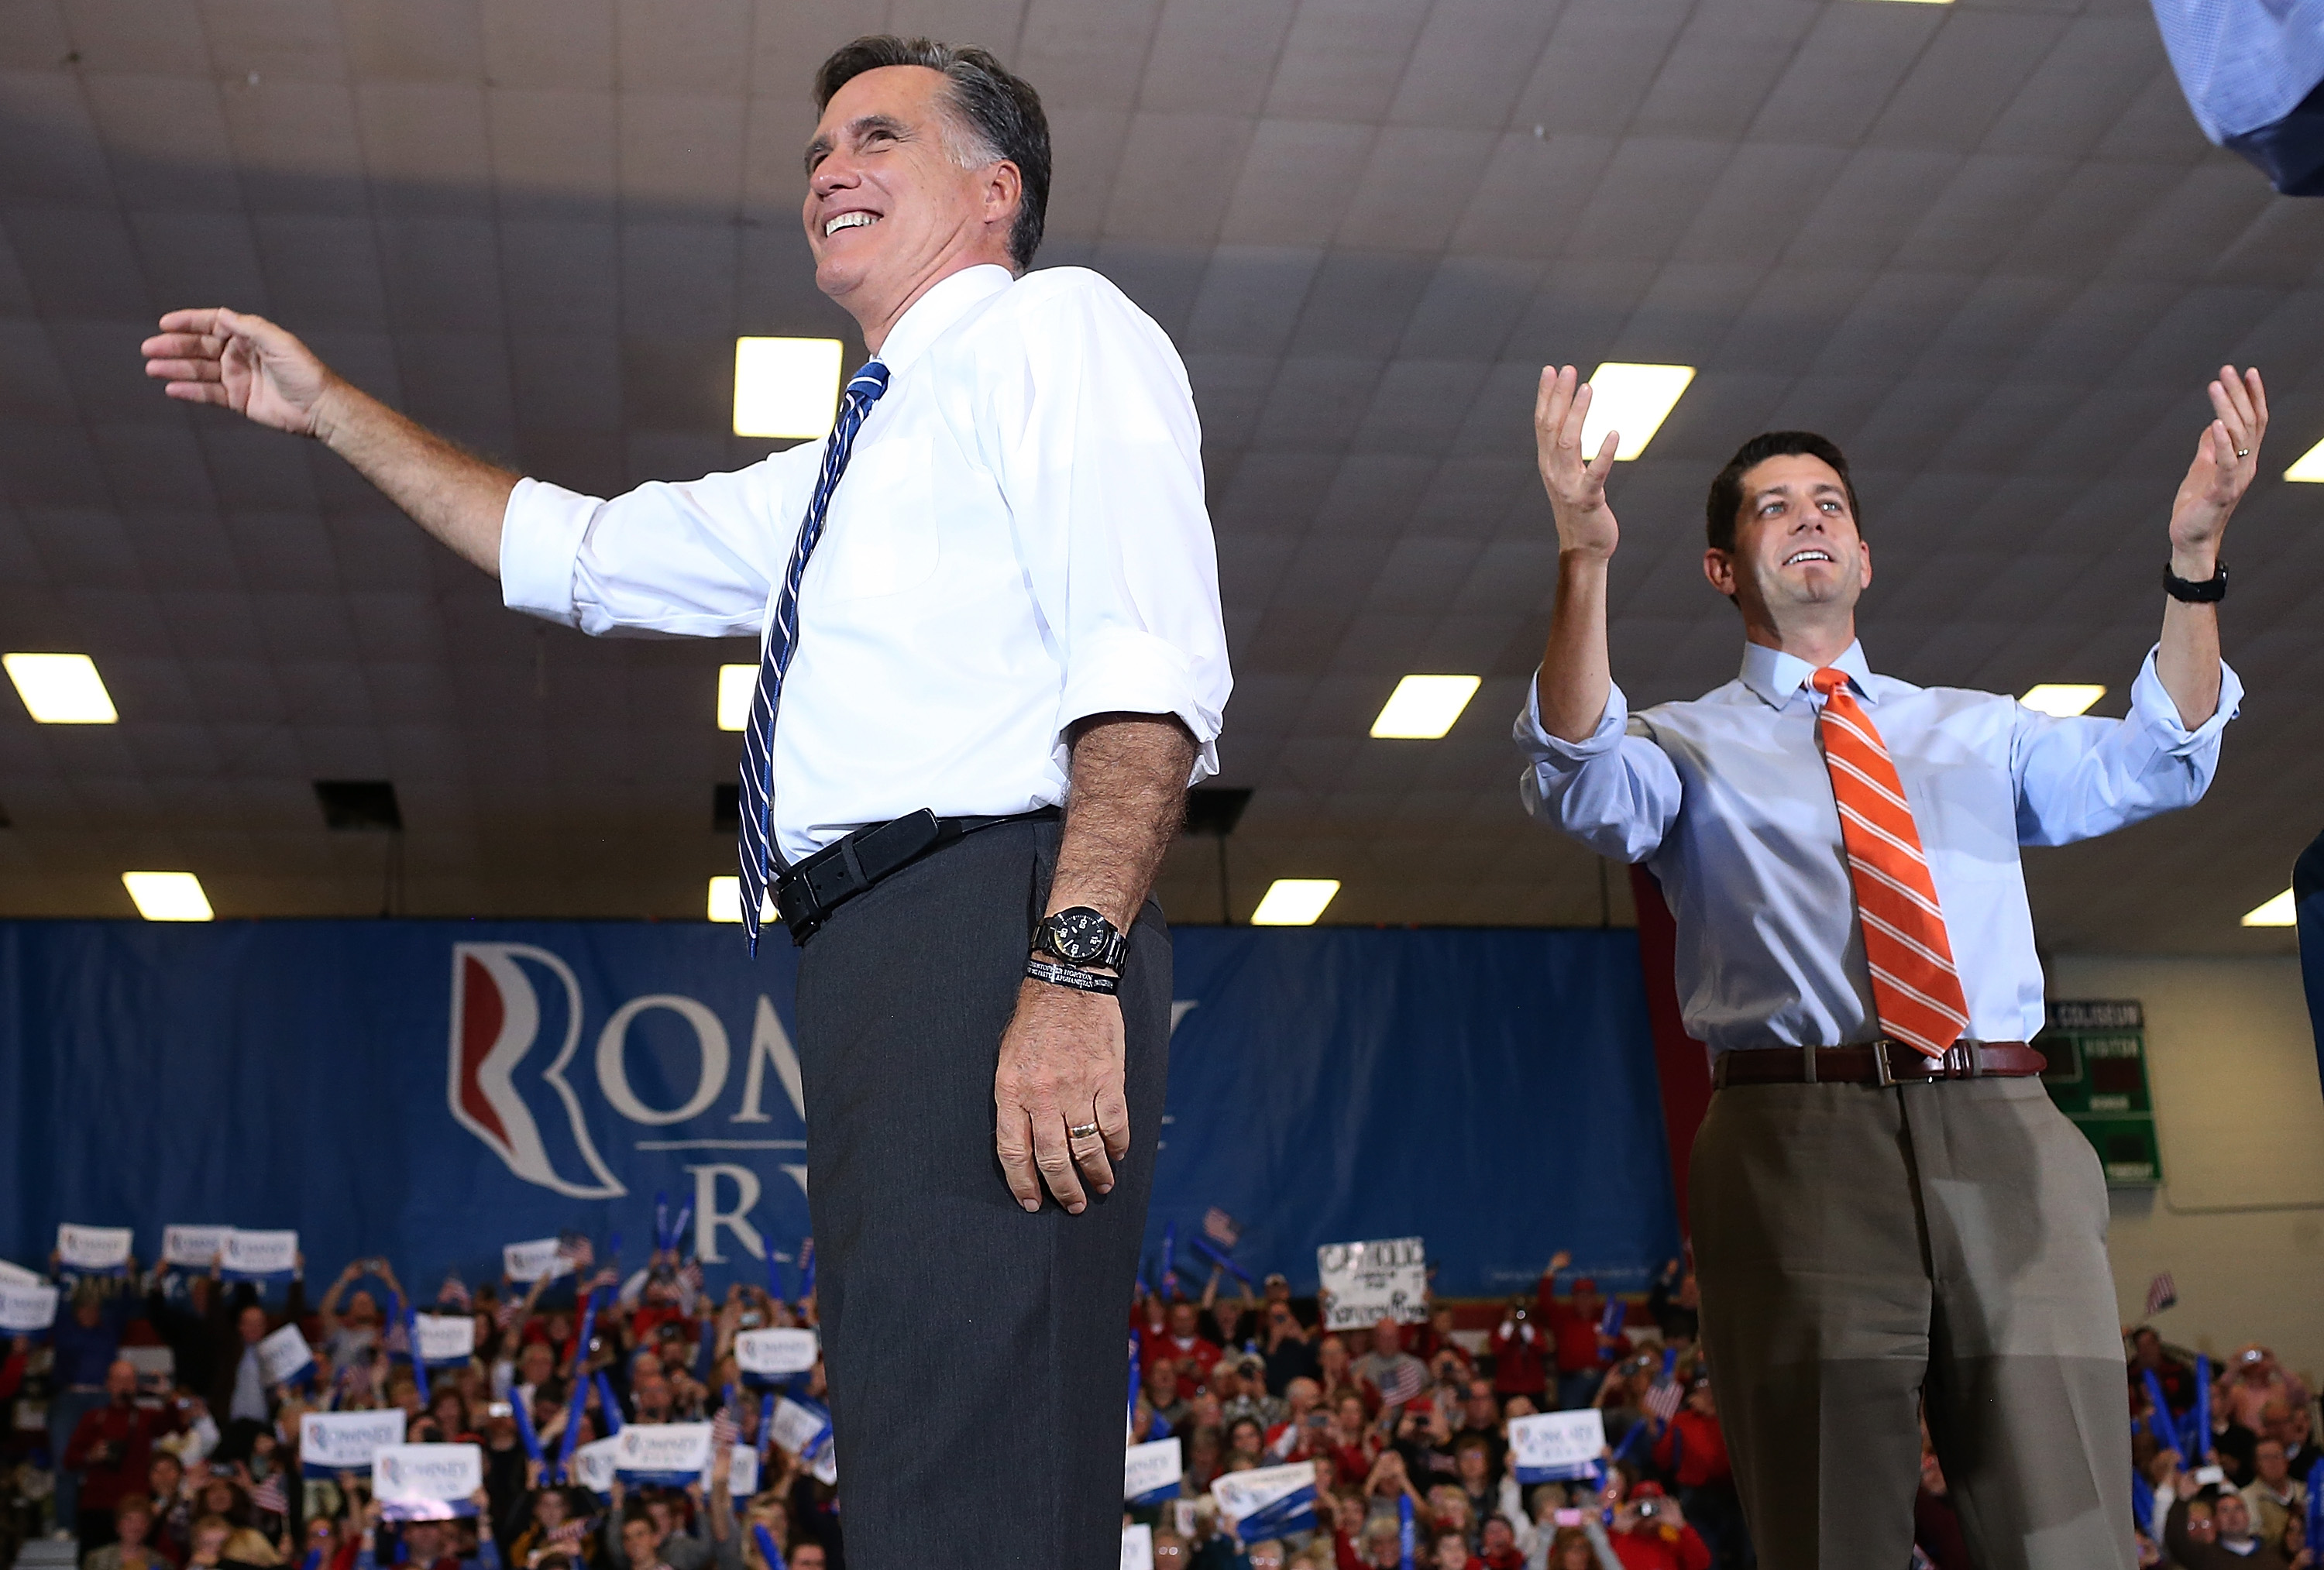 Republican presidential candidate Mitt Romney (l.) and his running mate Paul Ryan in 2012